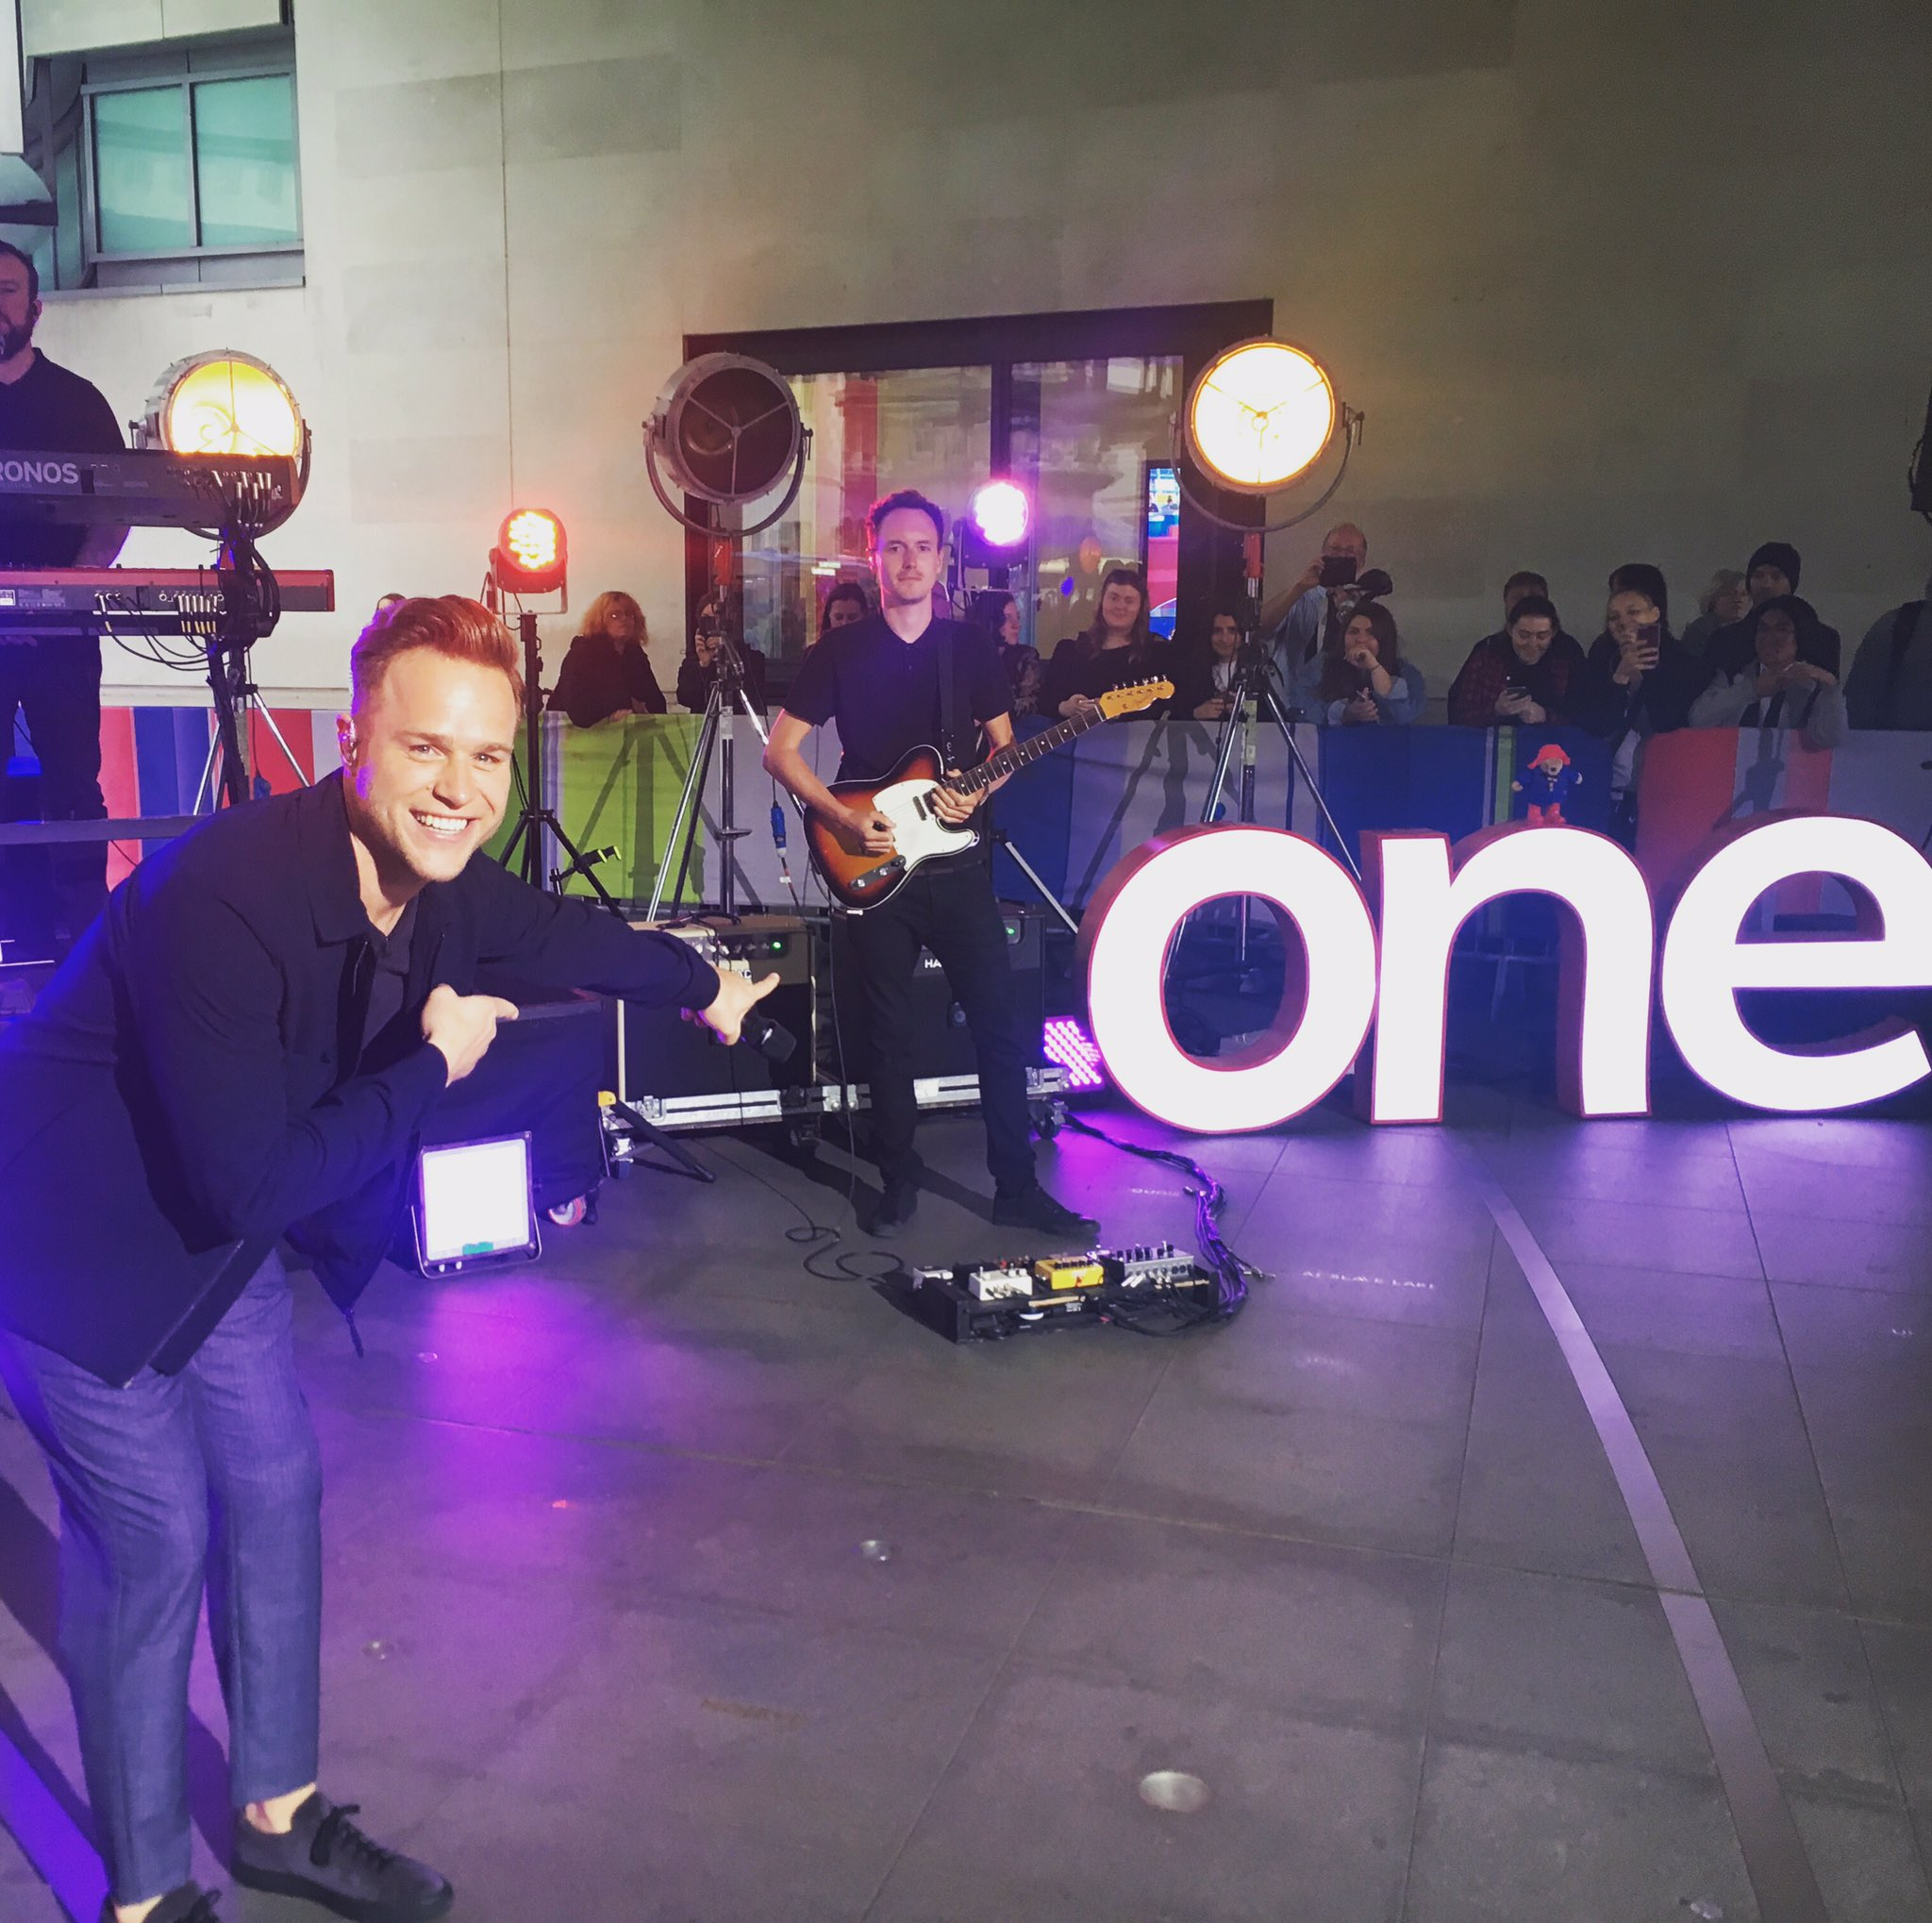 Tune into @BBCTheOneShow now where I'm chatting and performing #Unpredictable ������ https://t.co/qnuFoEb11q